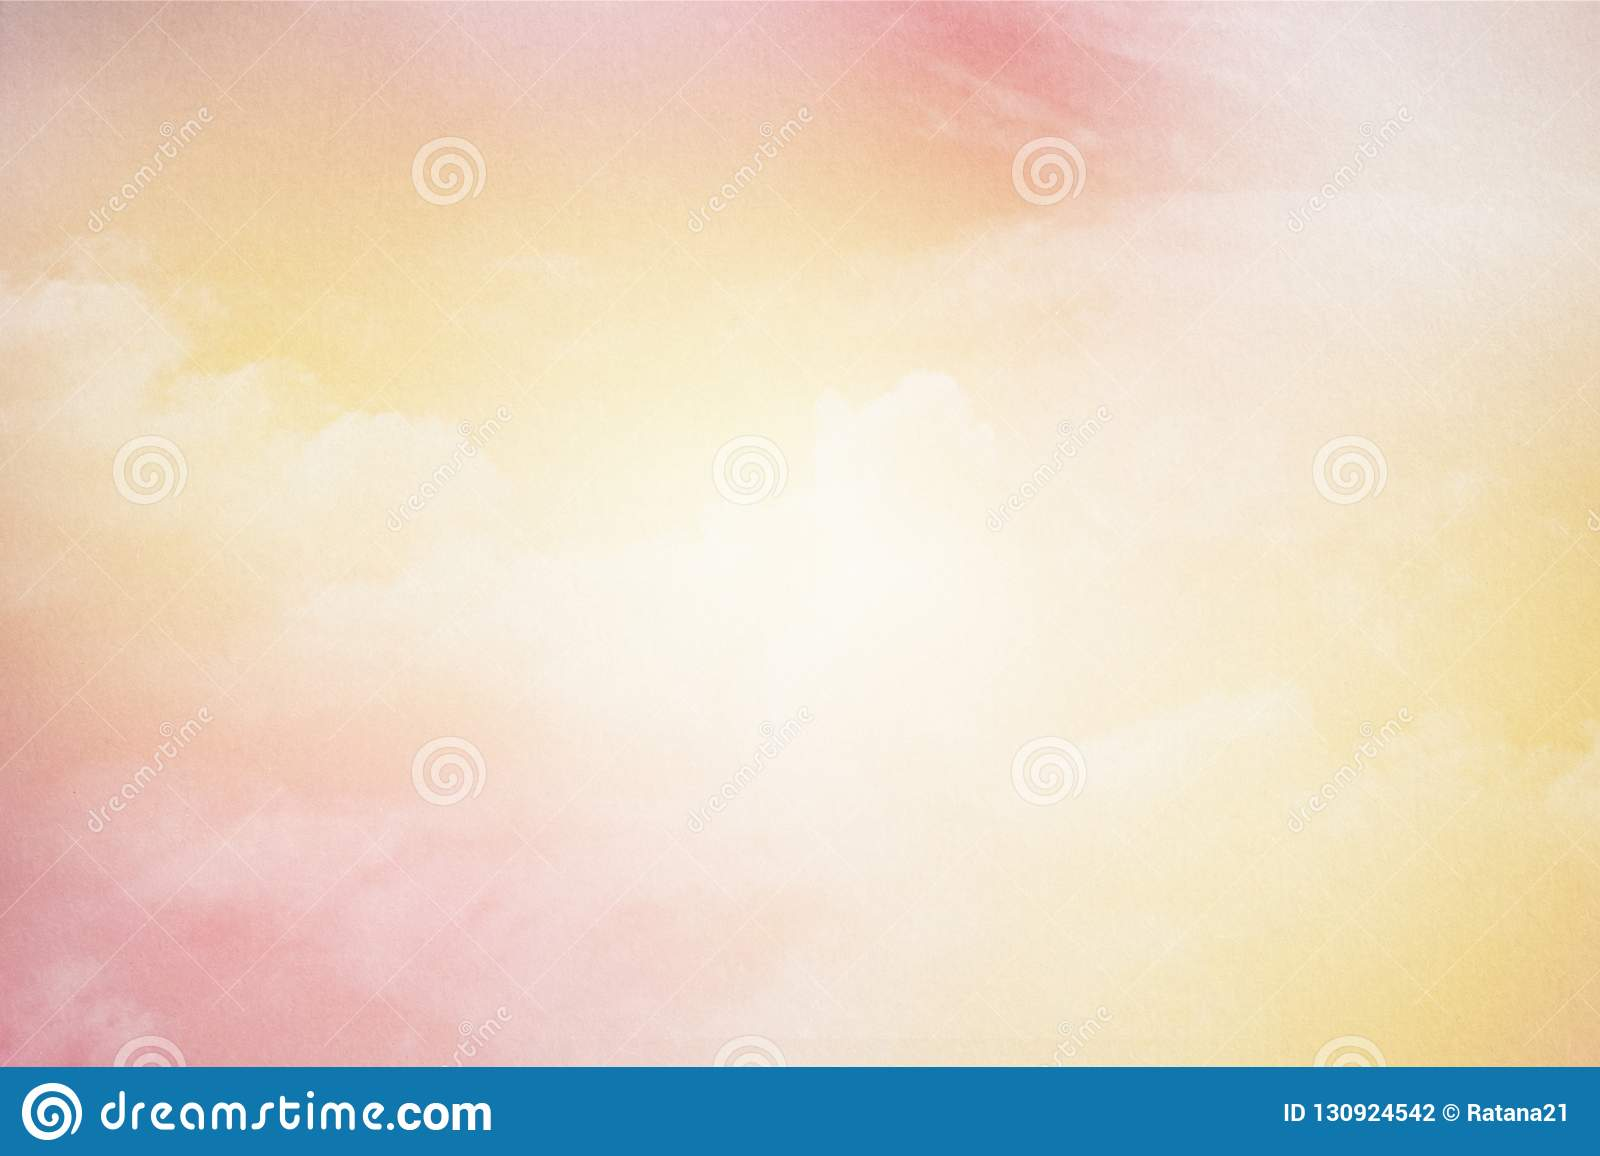 0e56a86943 Artistic cloudy sky with pastel gradient color and grunge paper texture